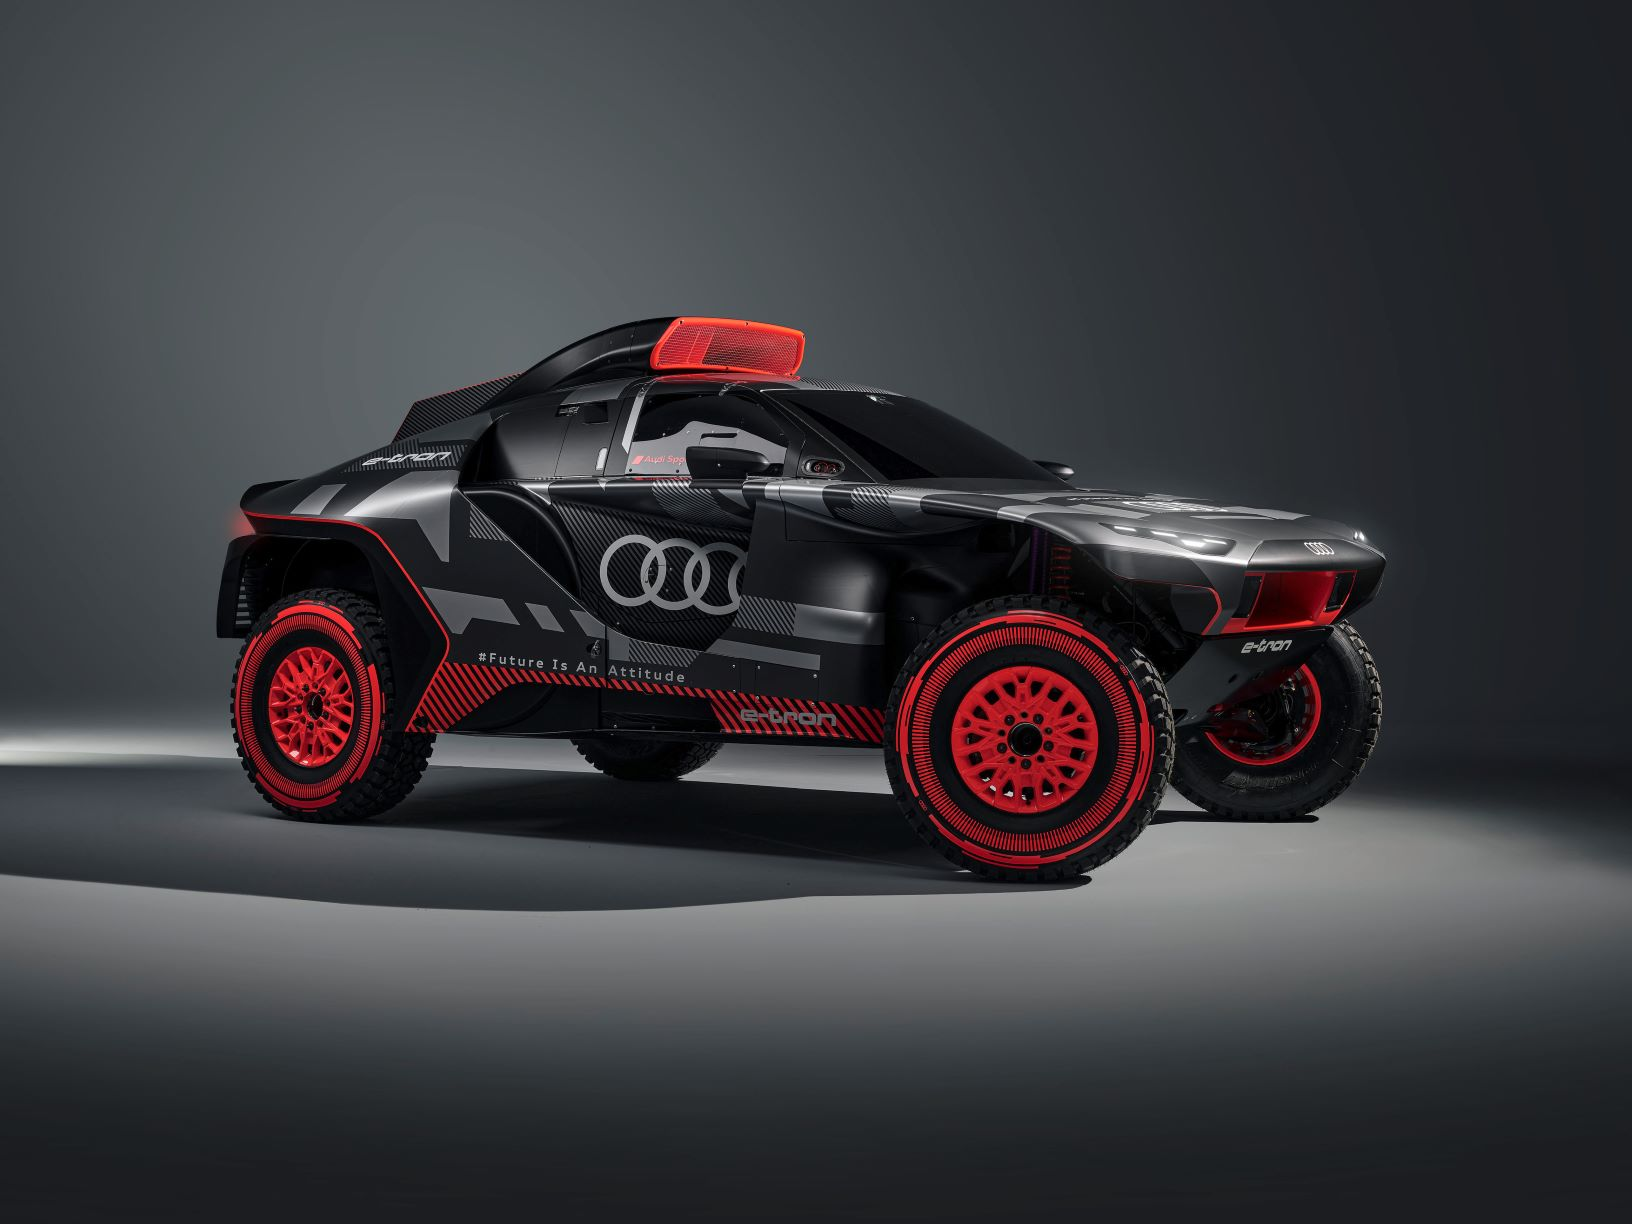 Front view of Audi's RS Q e-tron